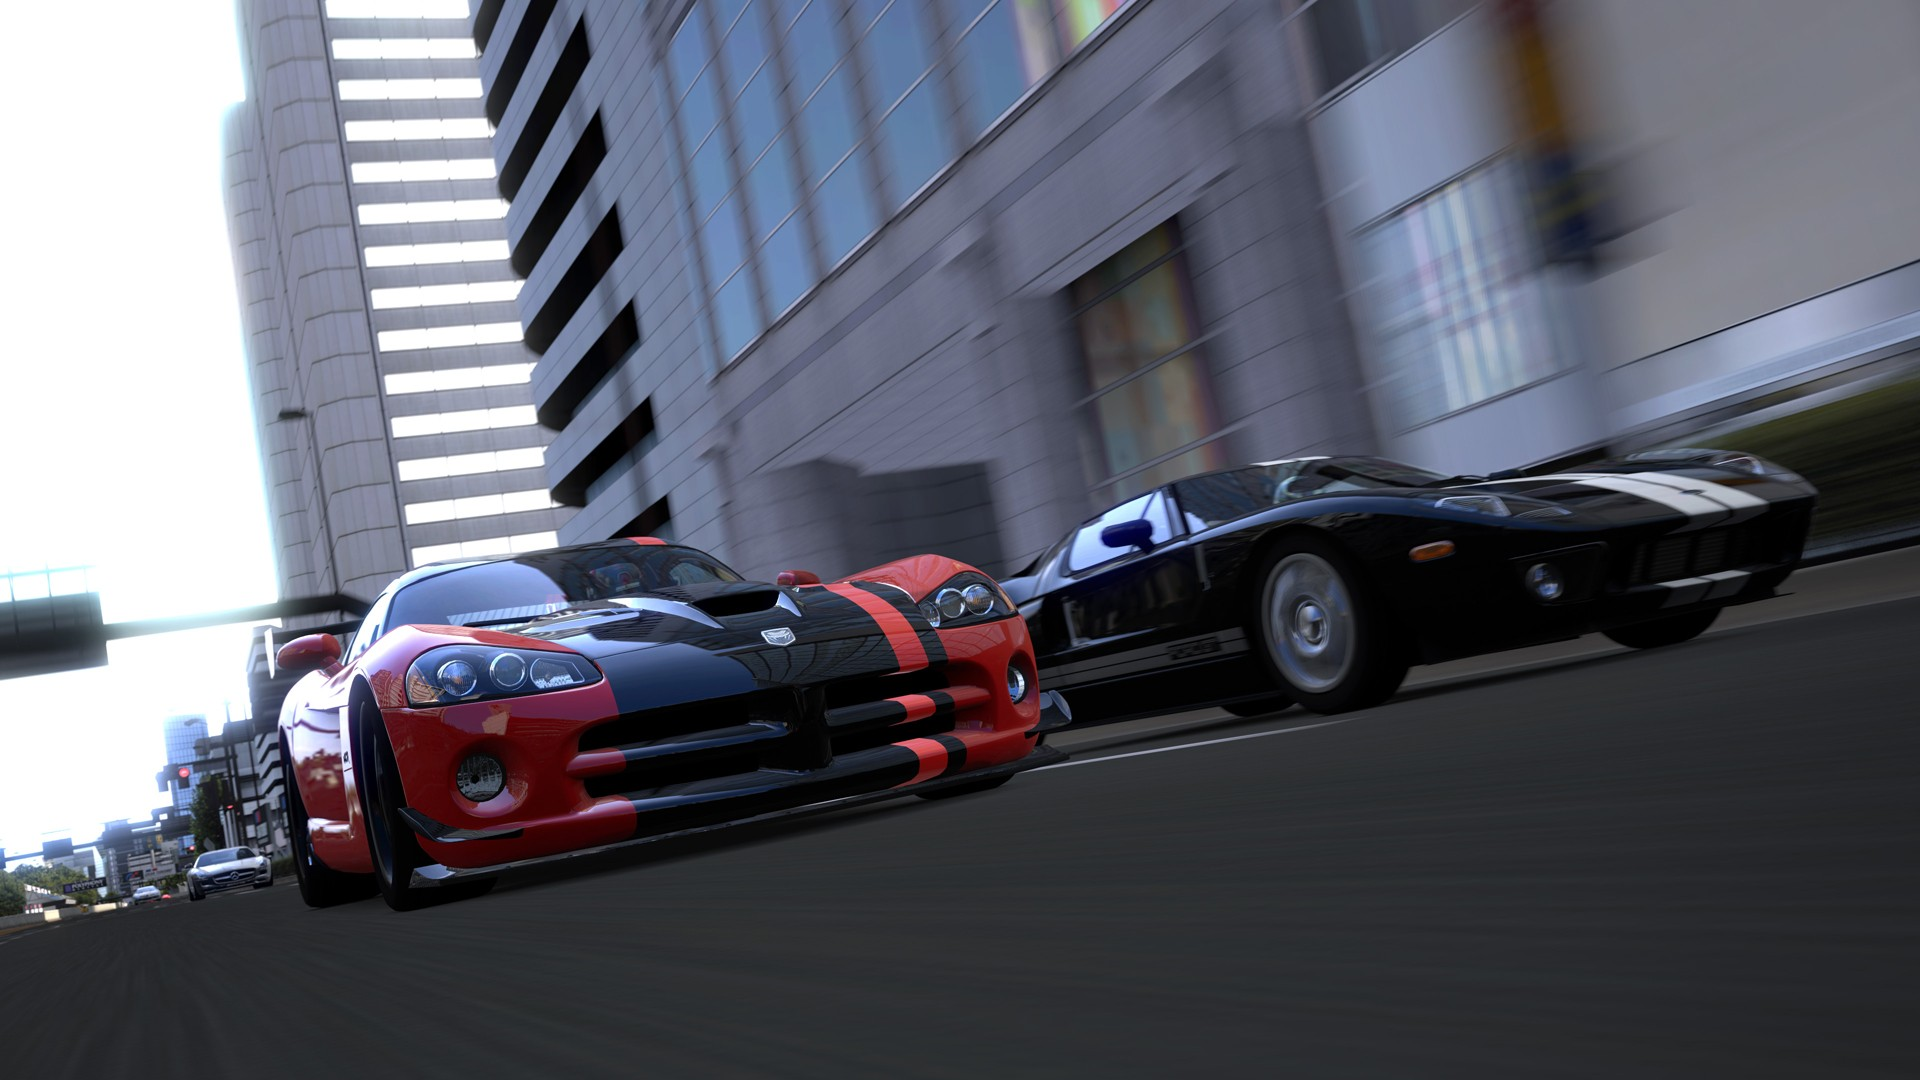 Ford GT Wallpaper 1920x1080 Ford GT Gran Turismo 5 Dodge Viper 1920x1080